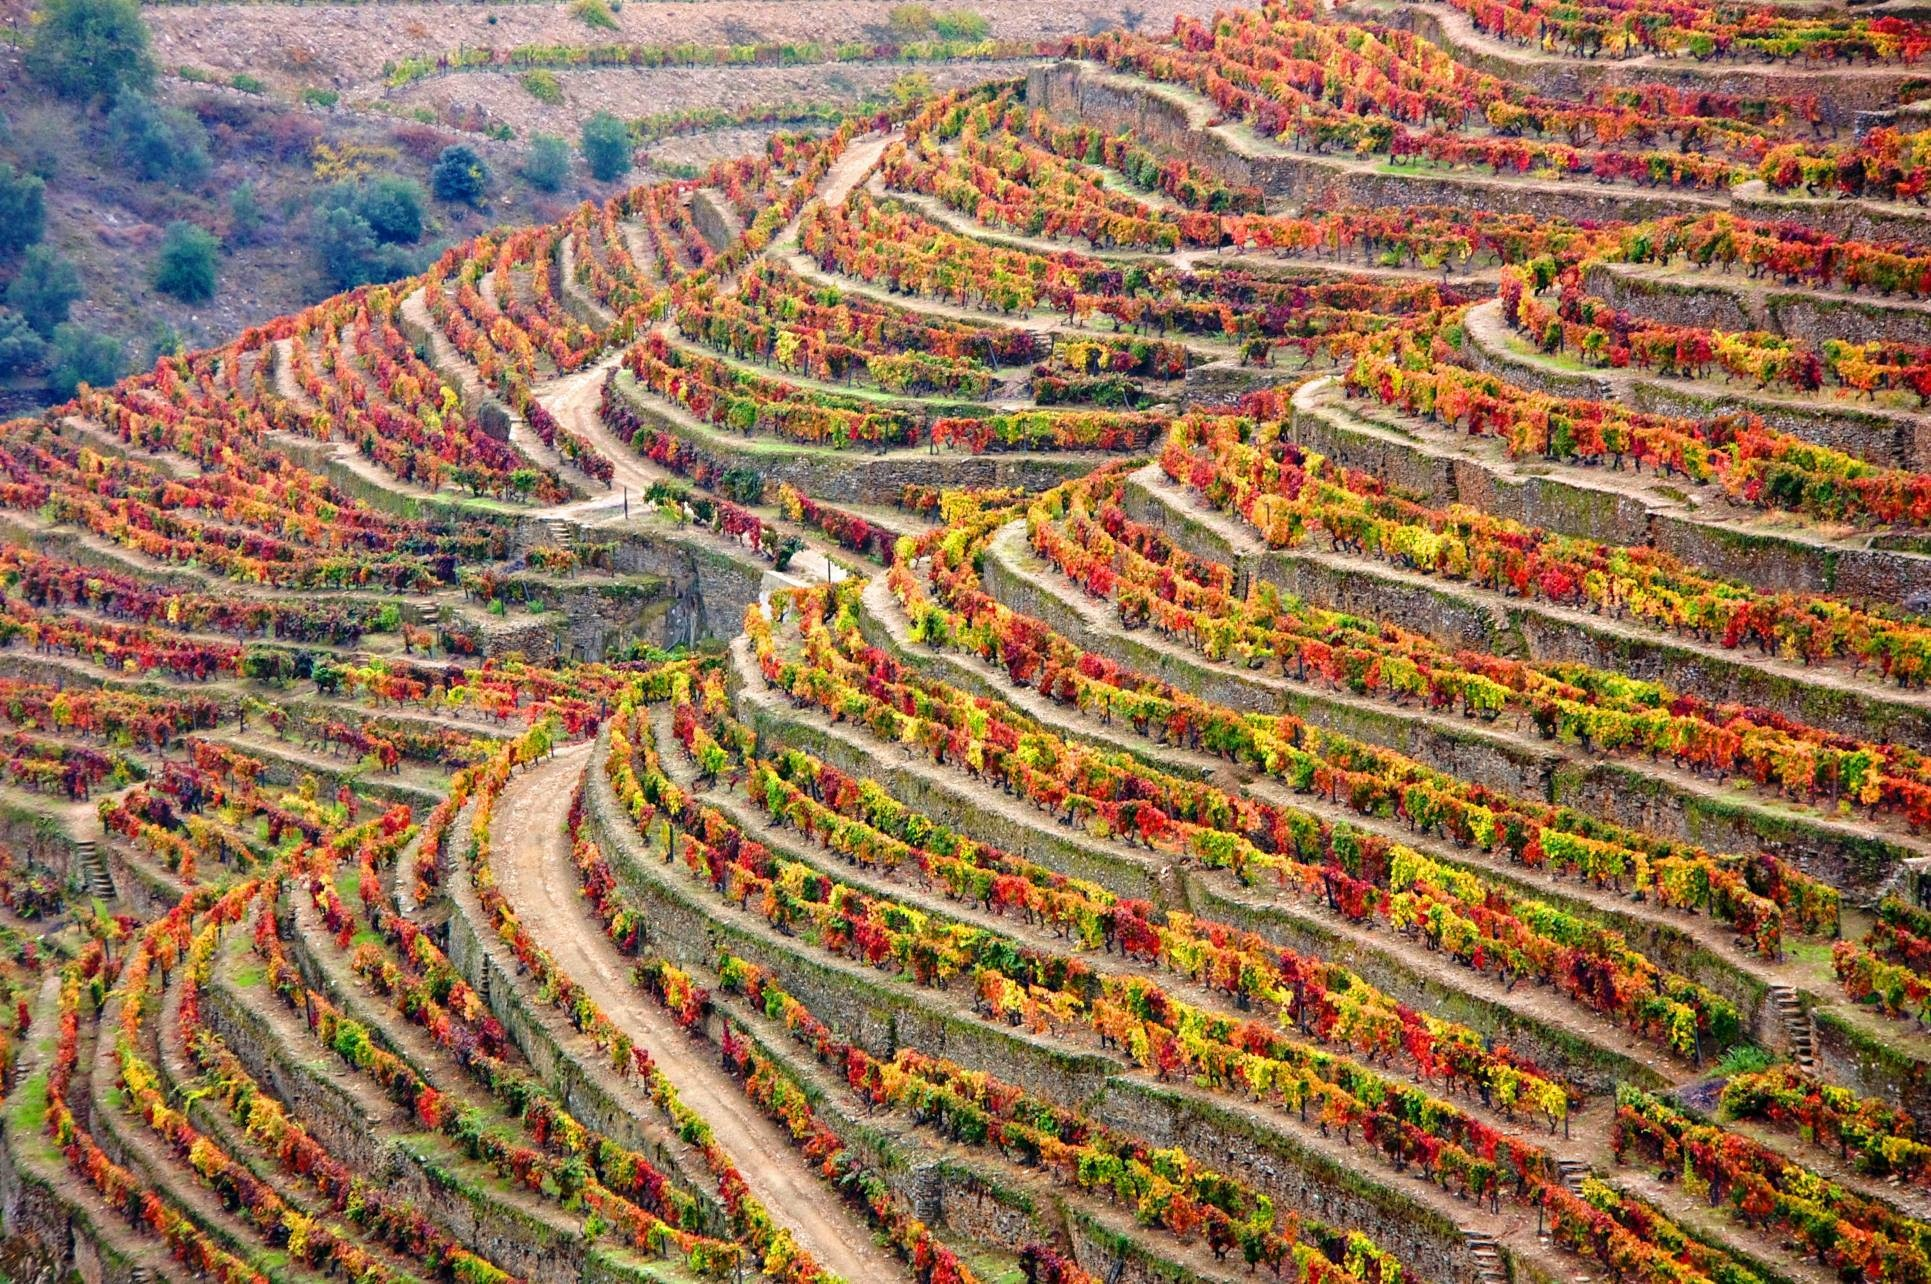 Wine stay in Portugal - Portugal -  - 2